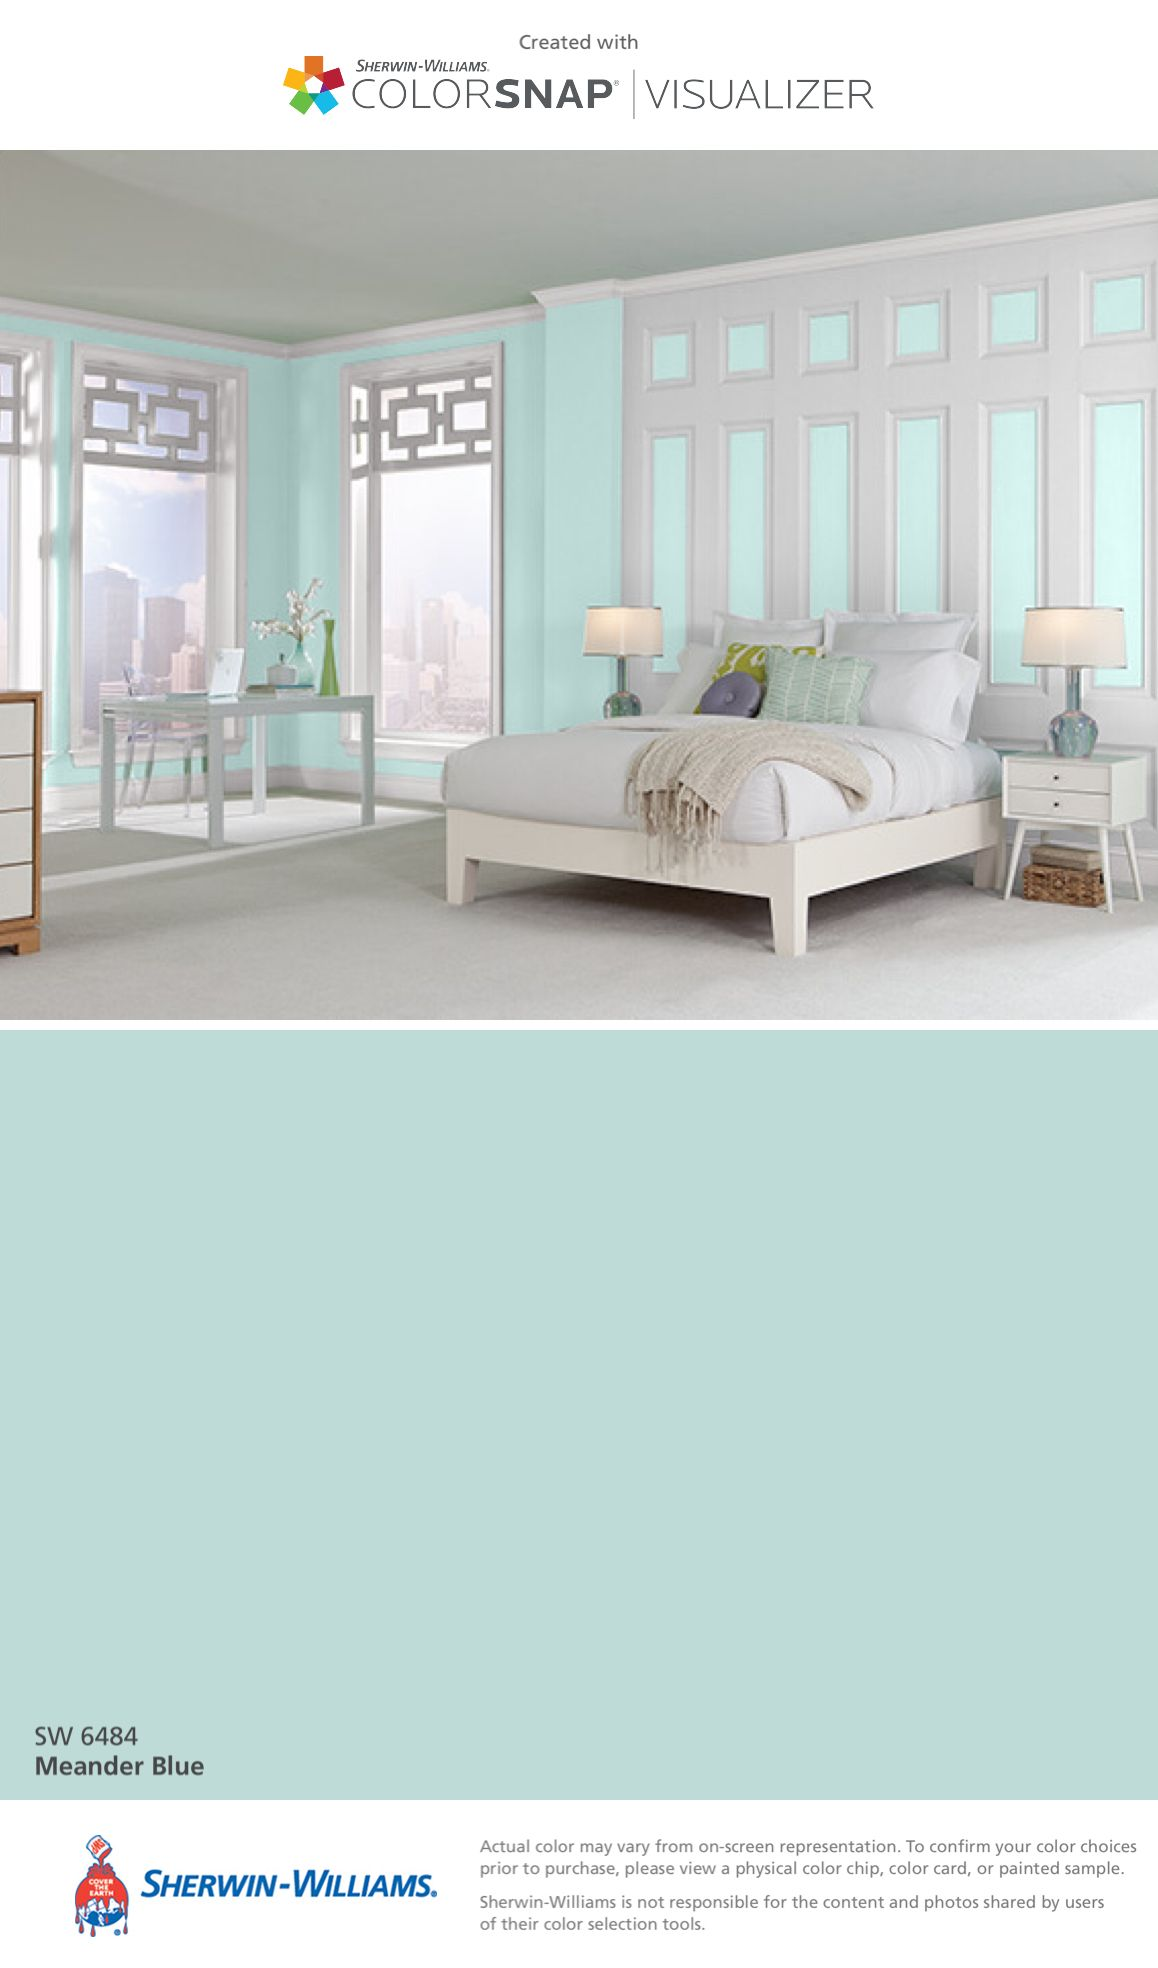 Inspirational Color Choices for Rooms